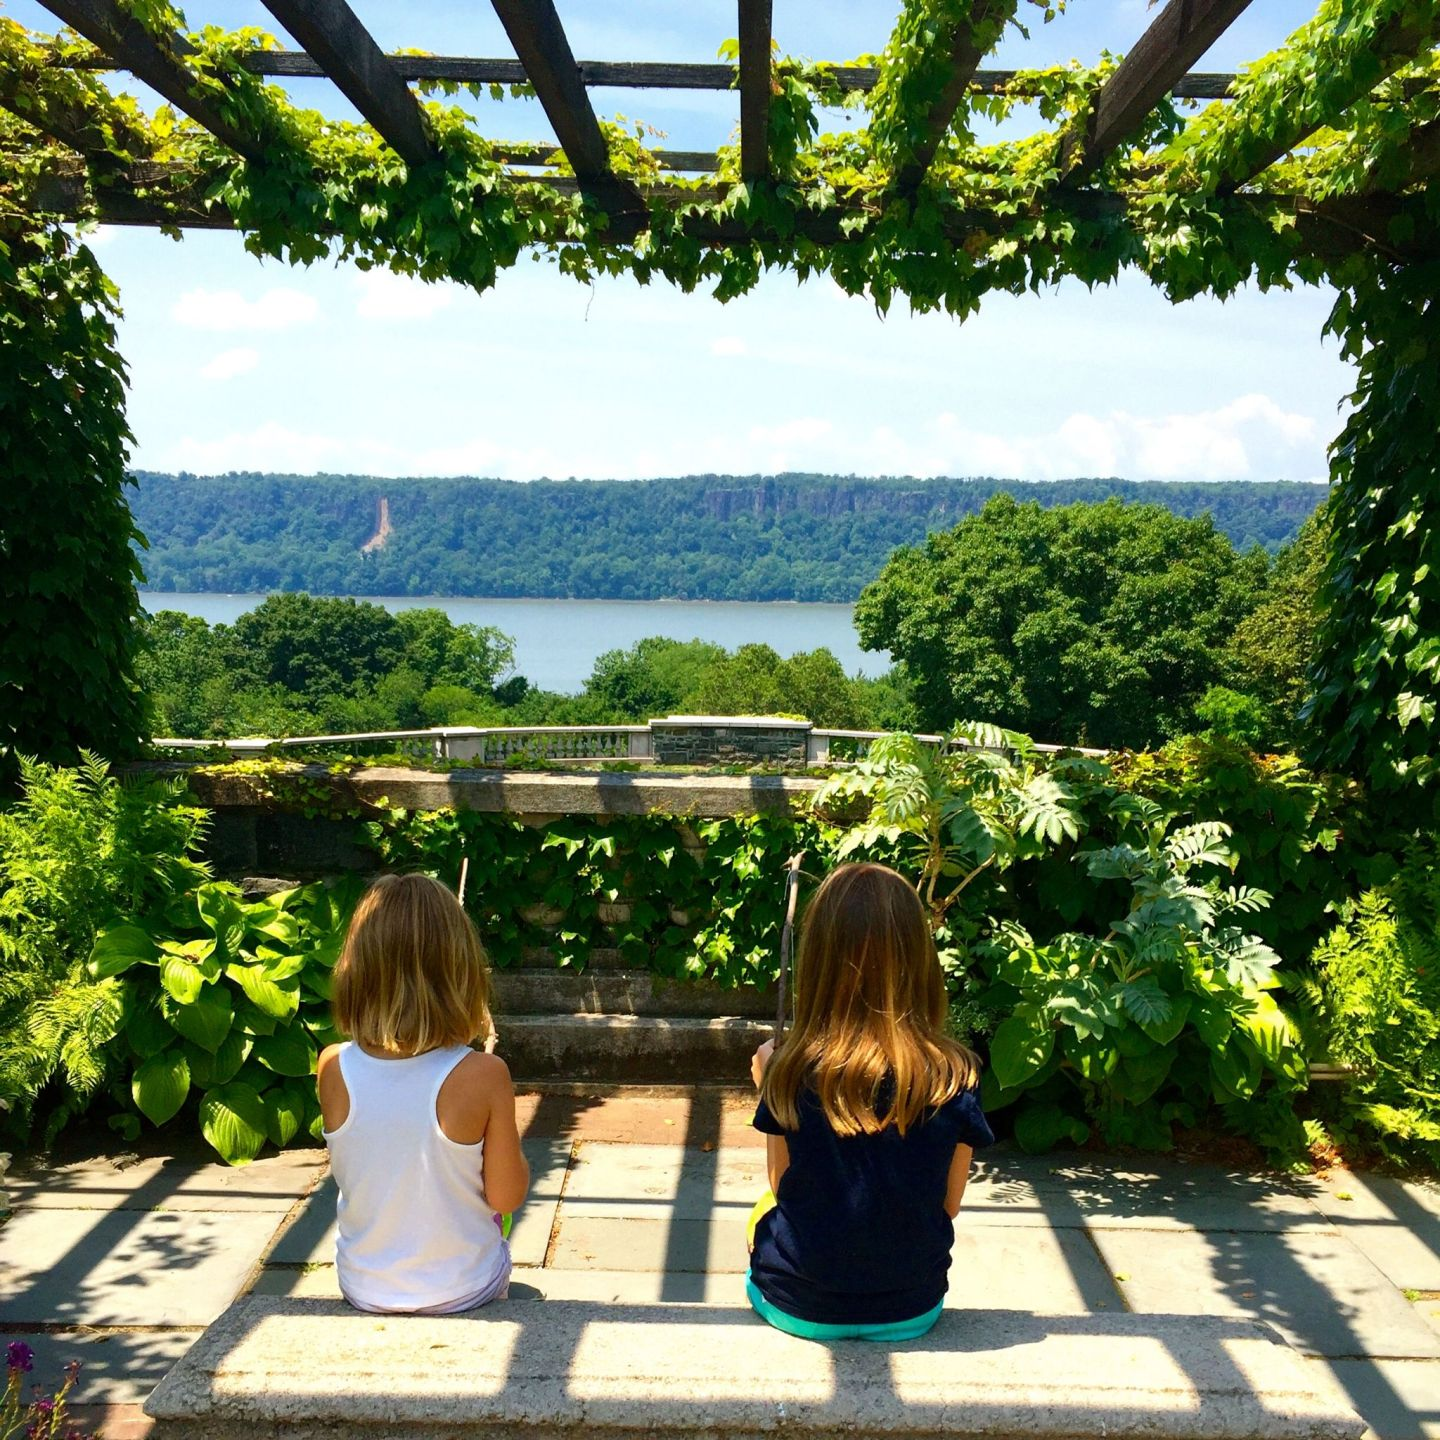 New York City: Top 5 Family Attractions in the Bronx